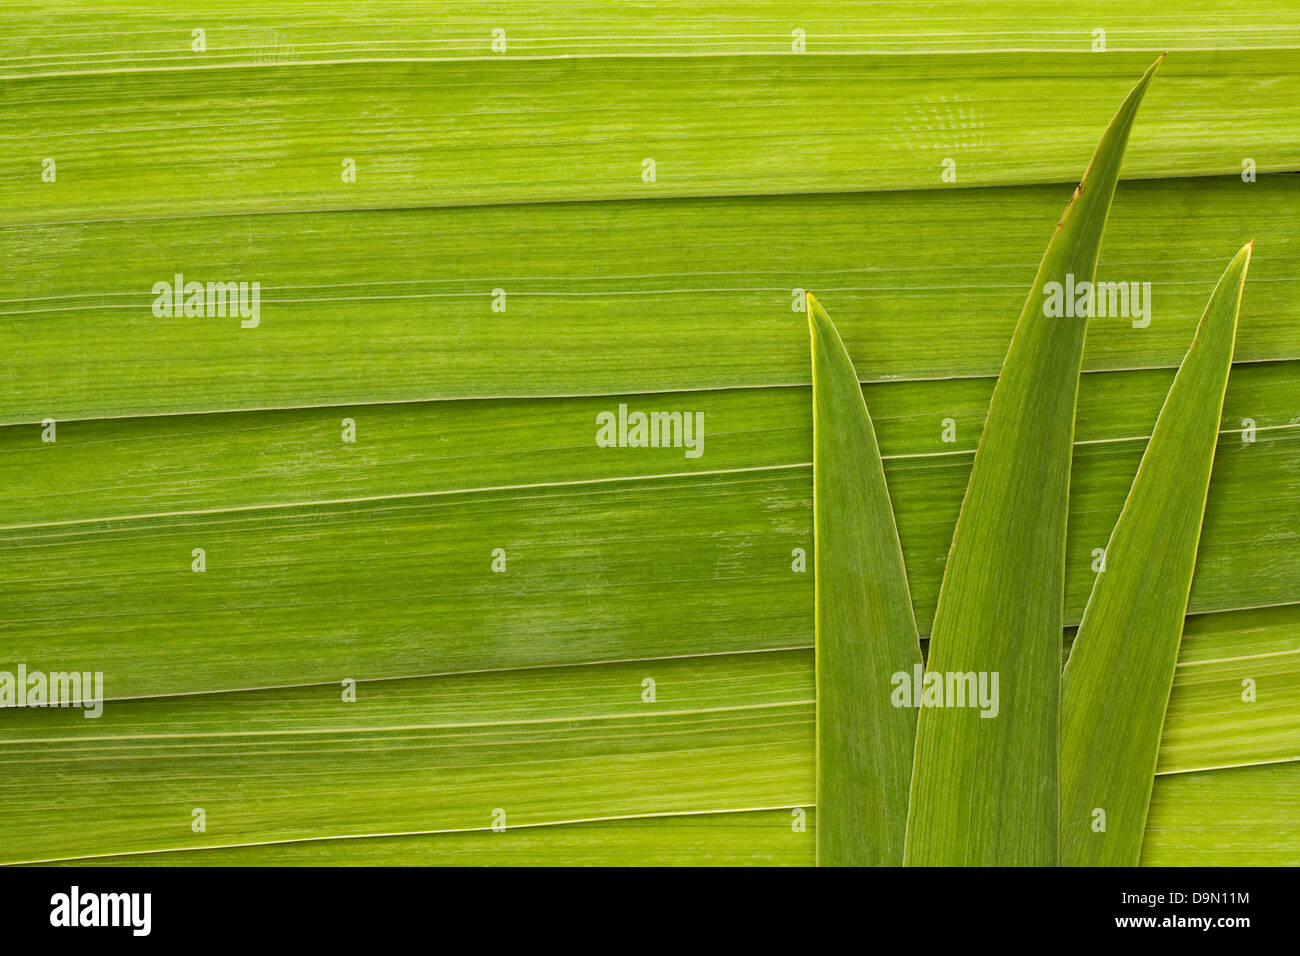 Long palm leaf detail background great symbol for tropical forests or travel to the tropics - Stock Image